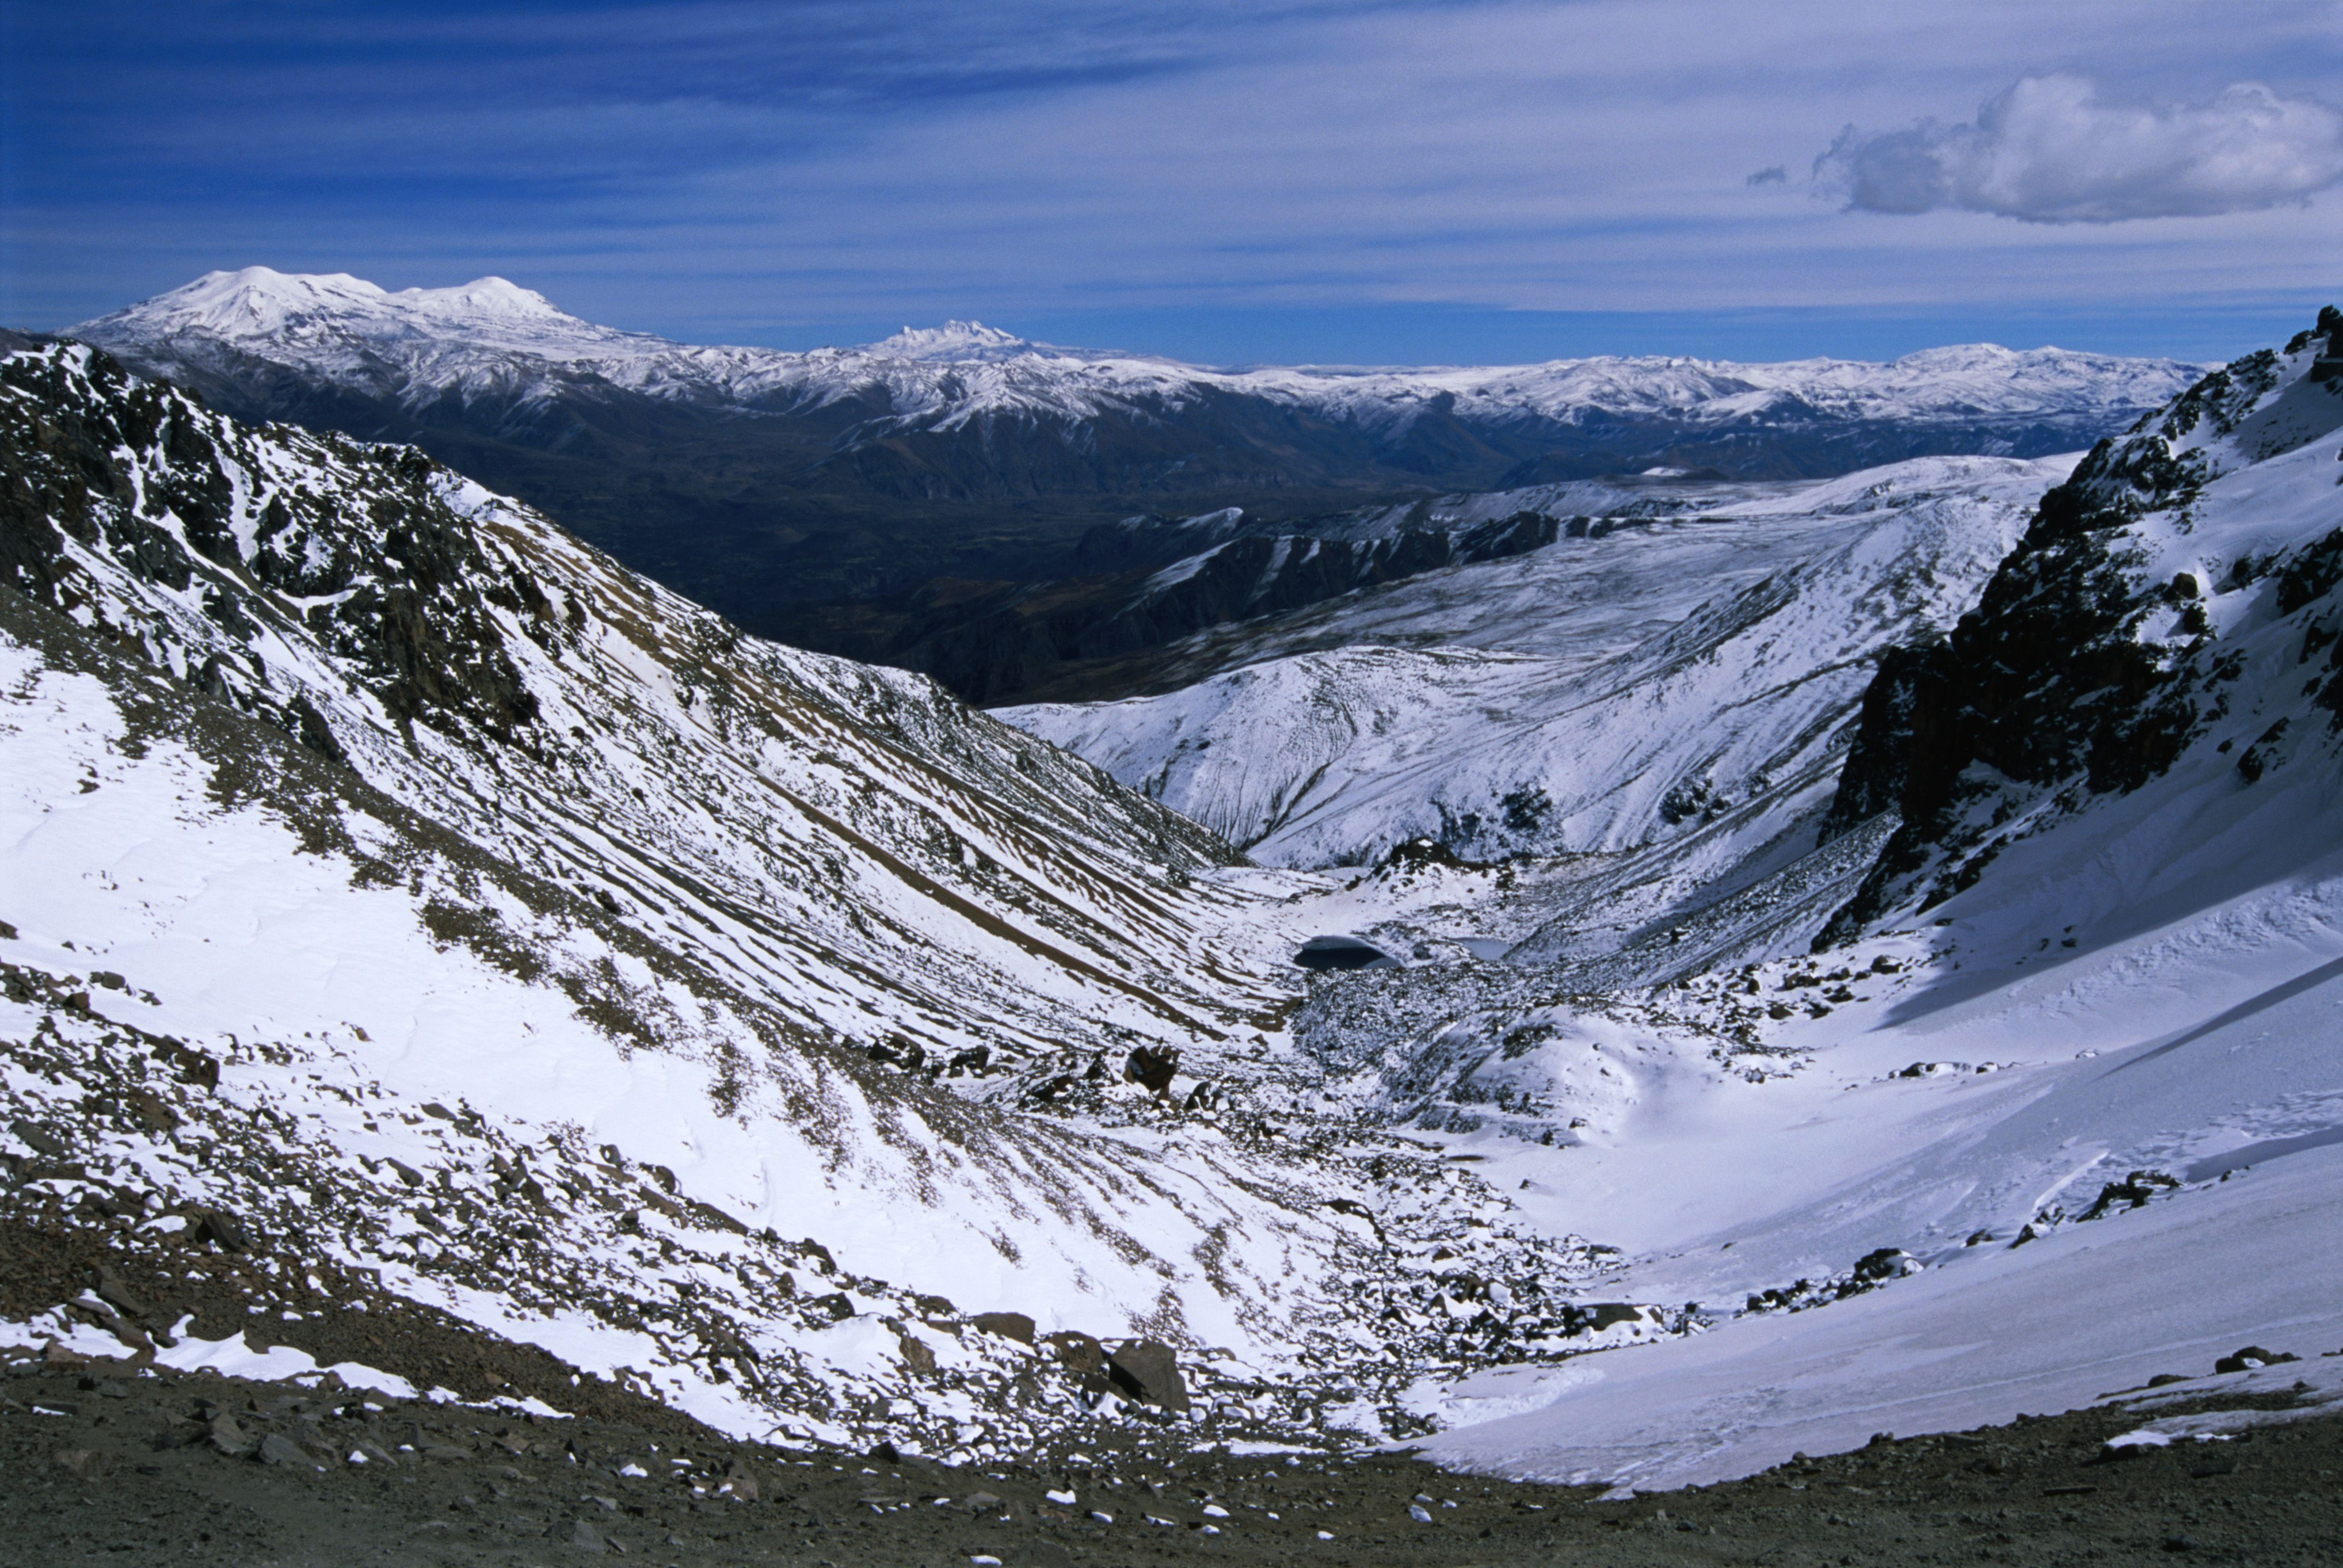 View westward from snowbound Cerani pass (5100m) with Coropuna (6425m) in the distance, on the Colca Canyon to Andagua trek.